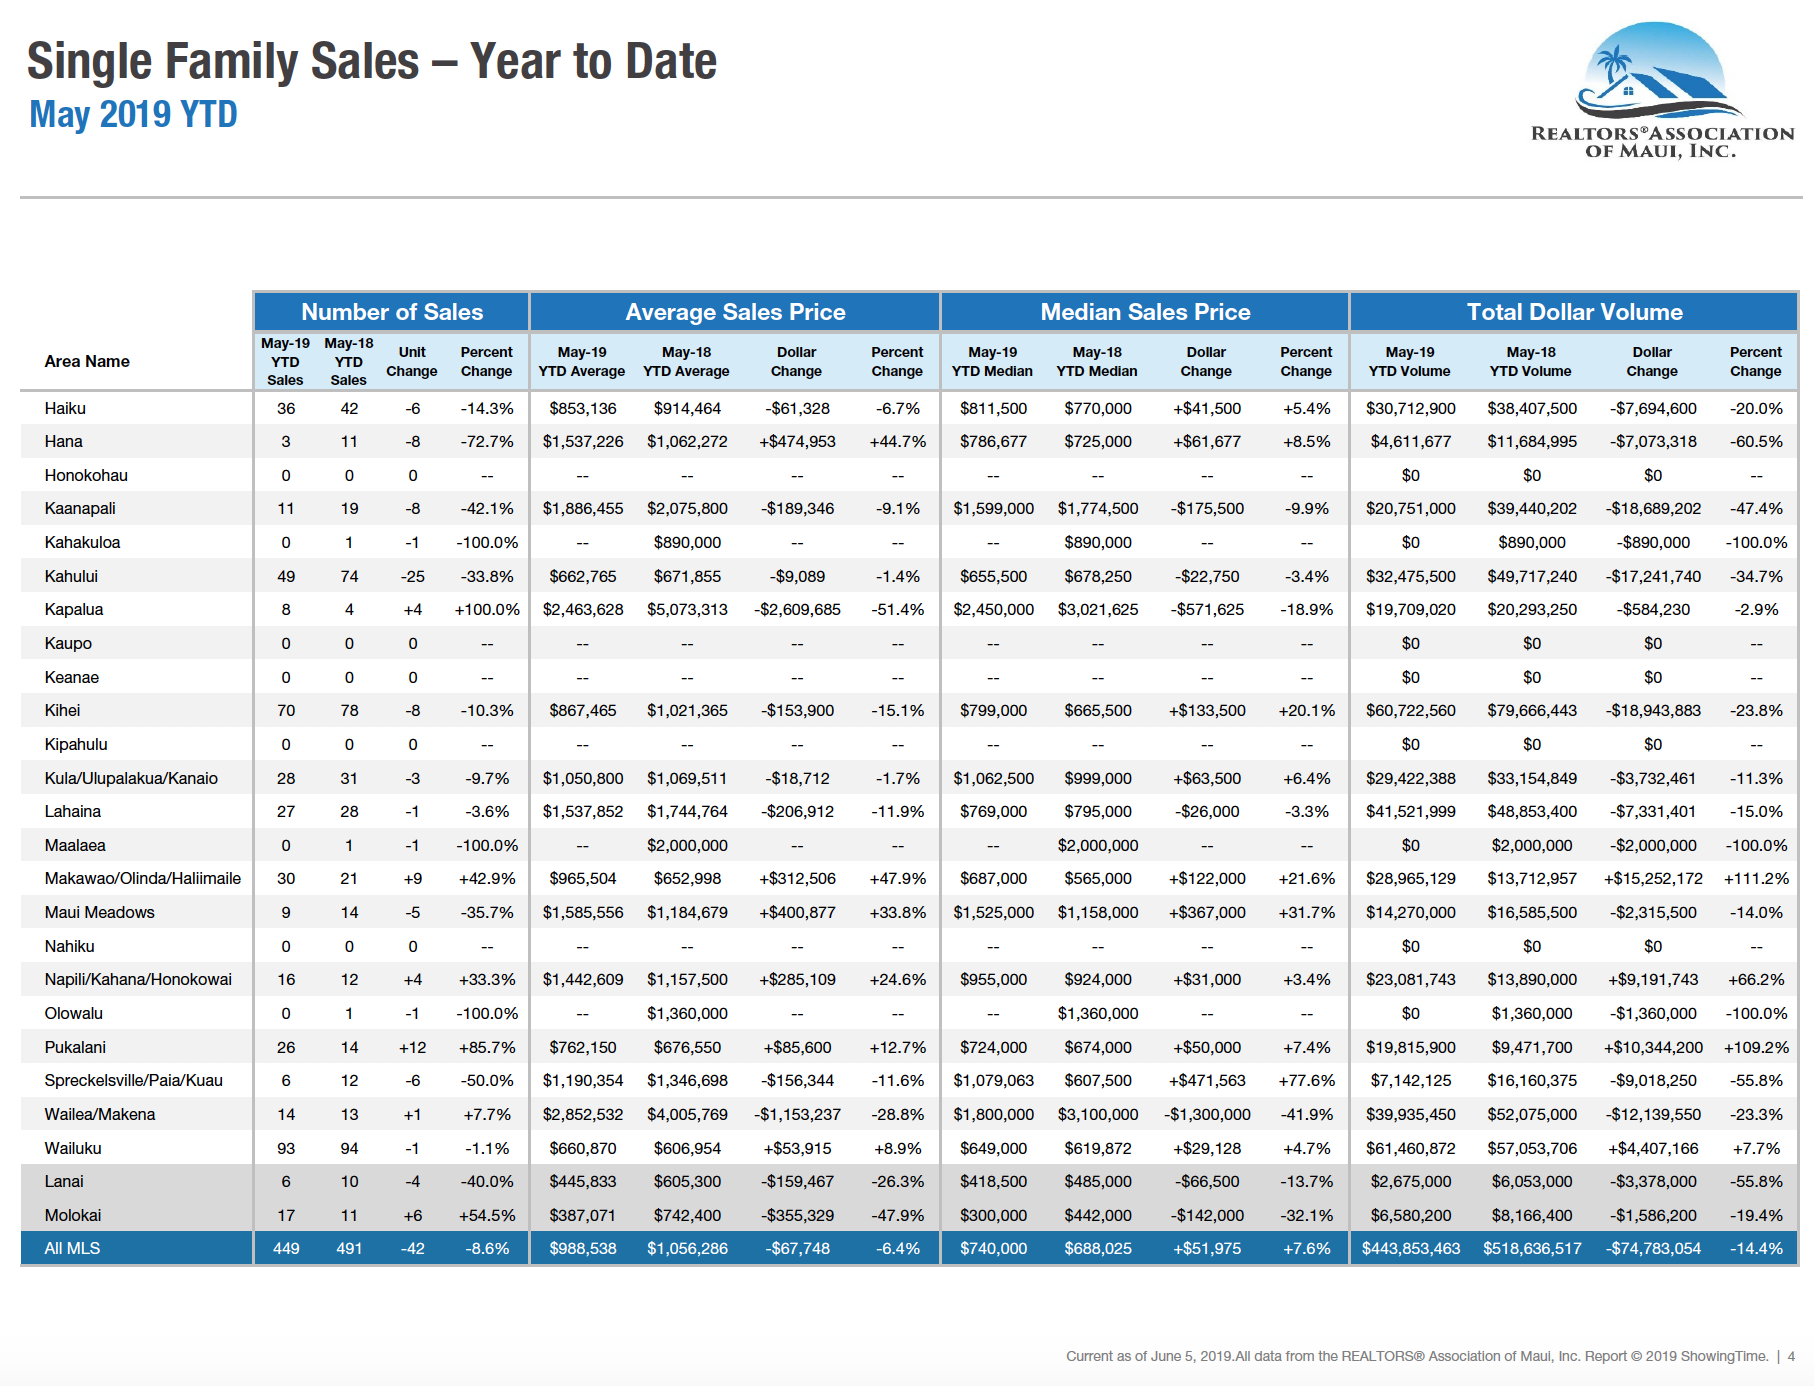 Report for single family homes sold year to date through May 2019 on Maui.